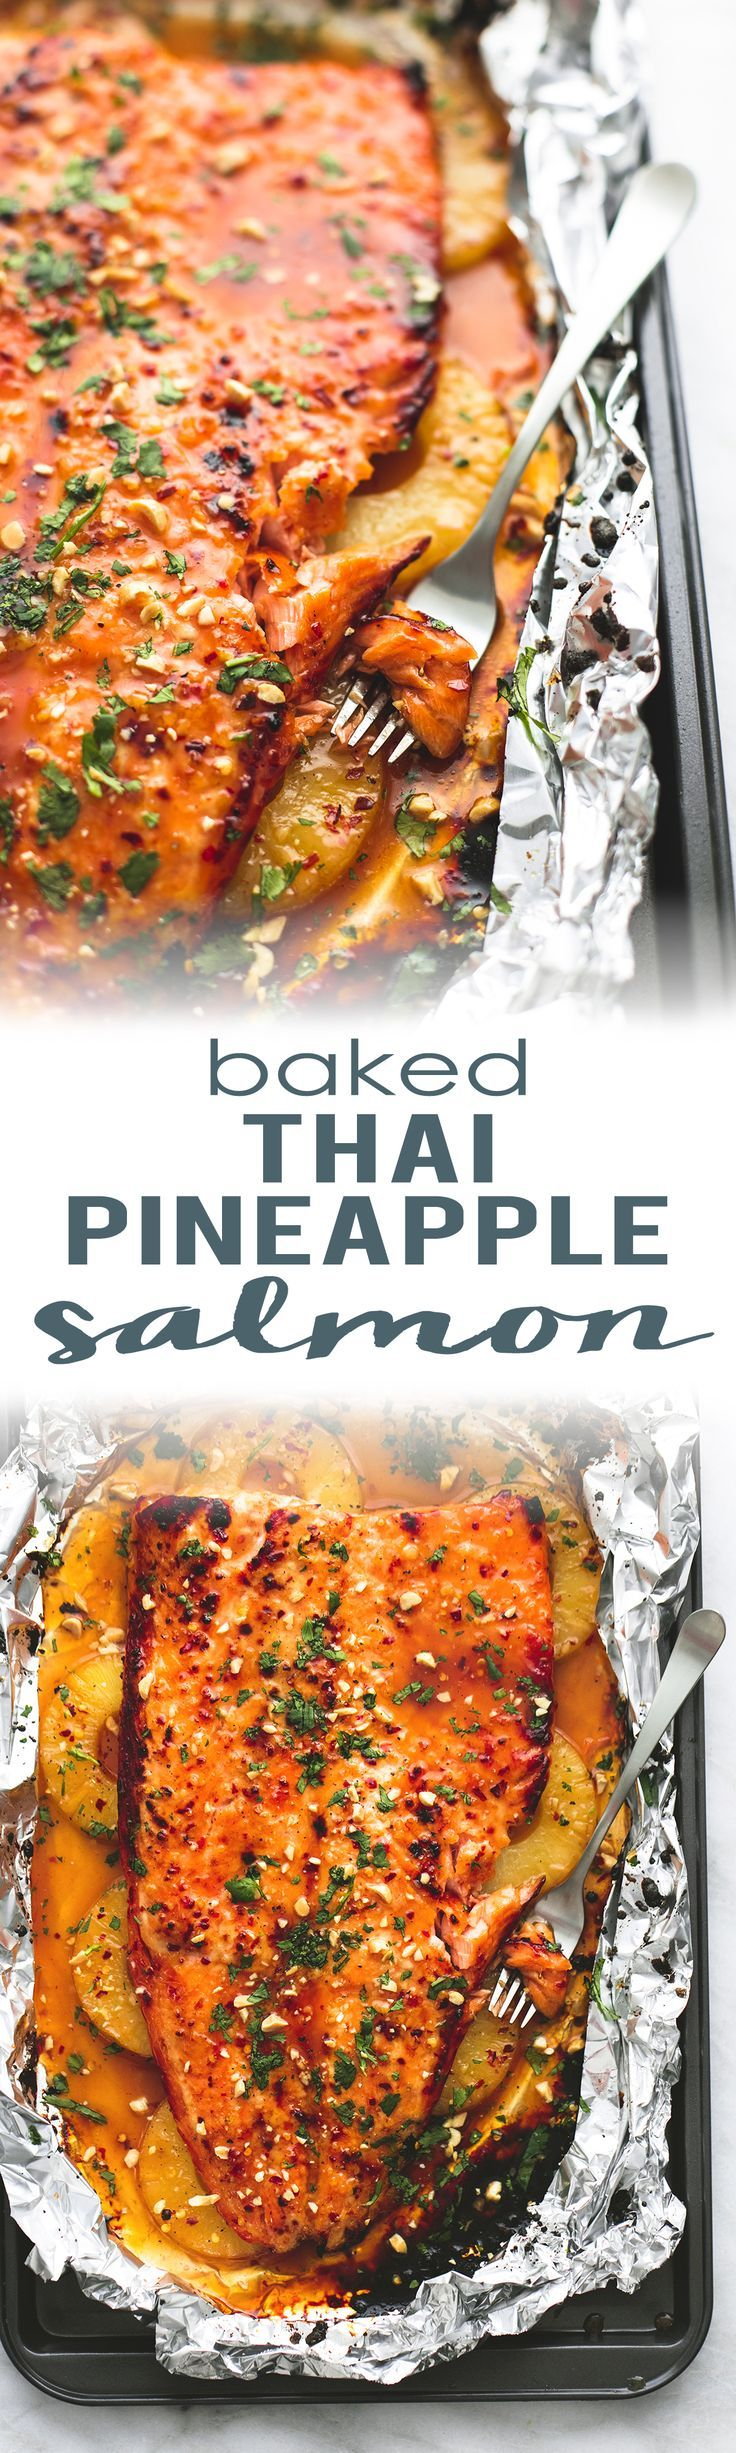 Baked Thai Pineapple Salmon in Foil is a delicious, easy, 30-minute meal bursting with flavor!